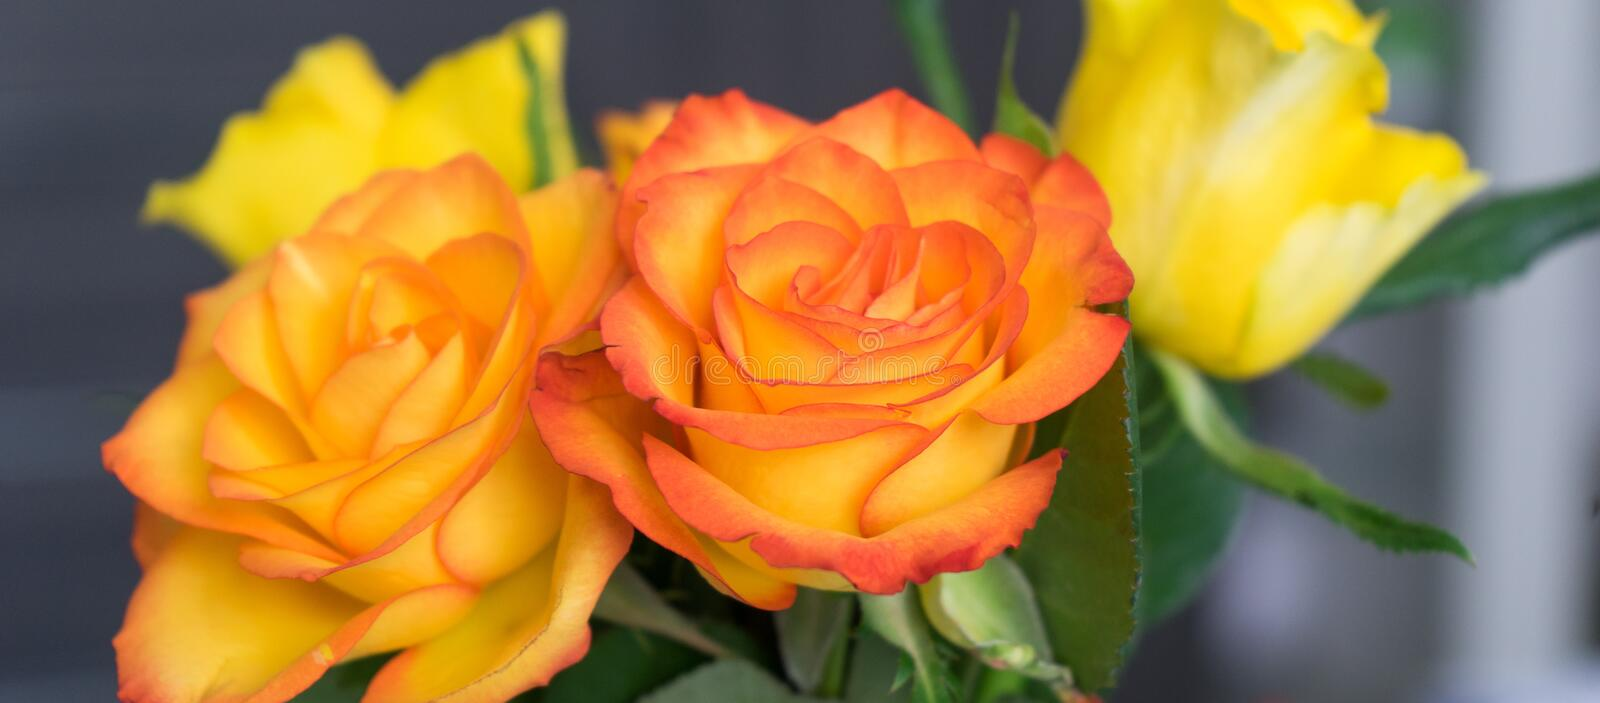 Flower, Rose, Yellow, Rose Family stock images